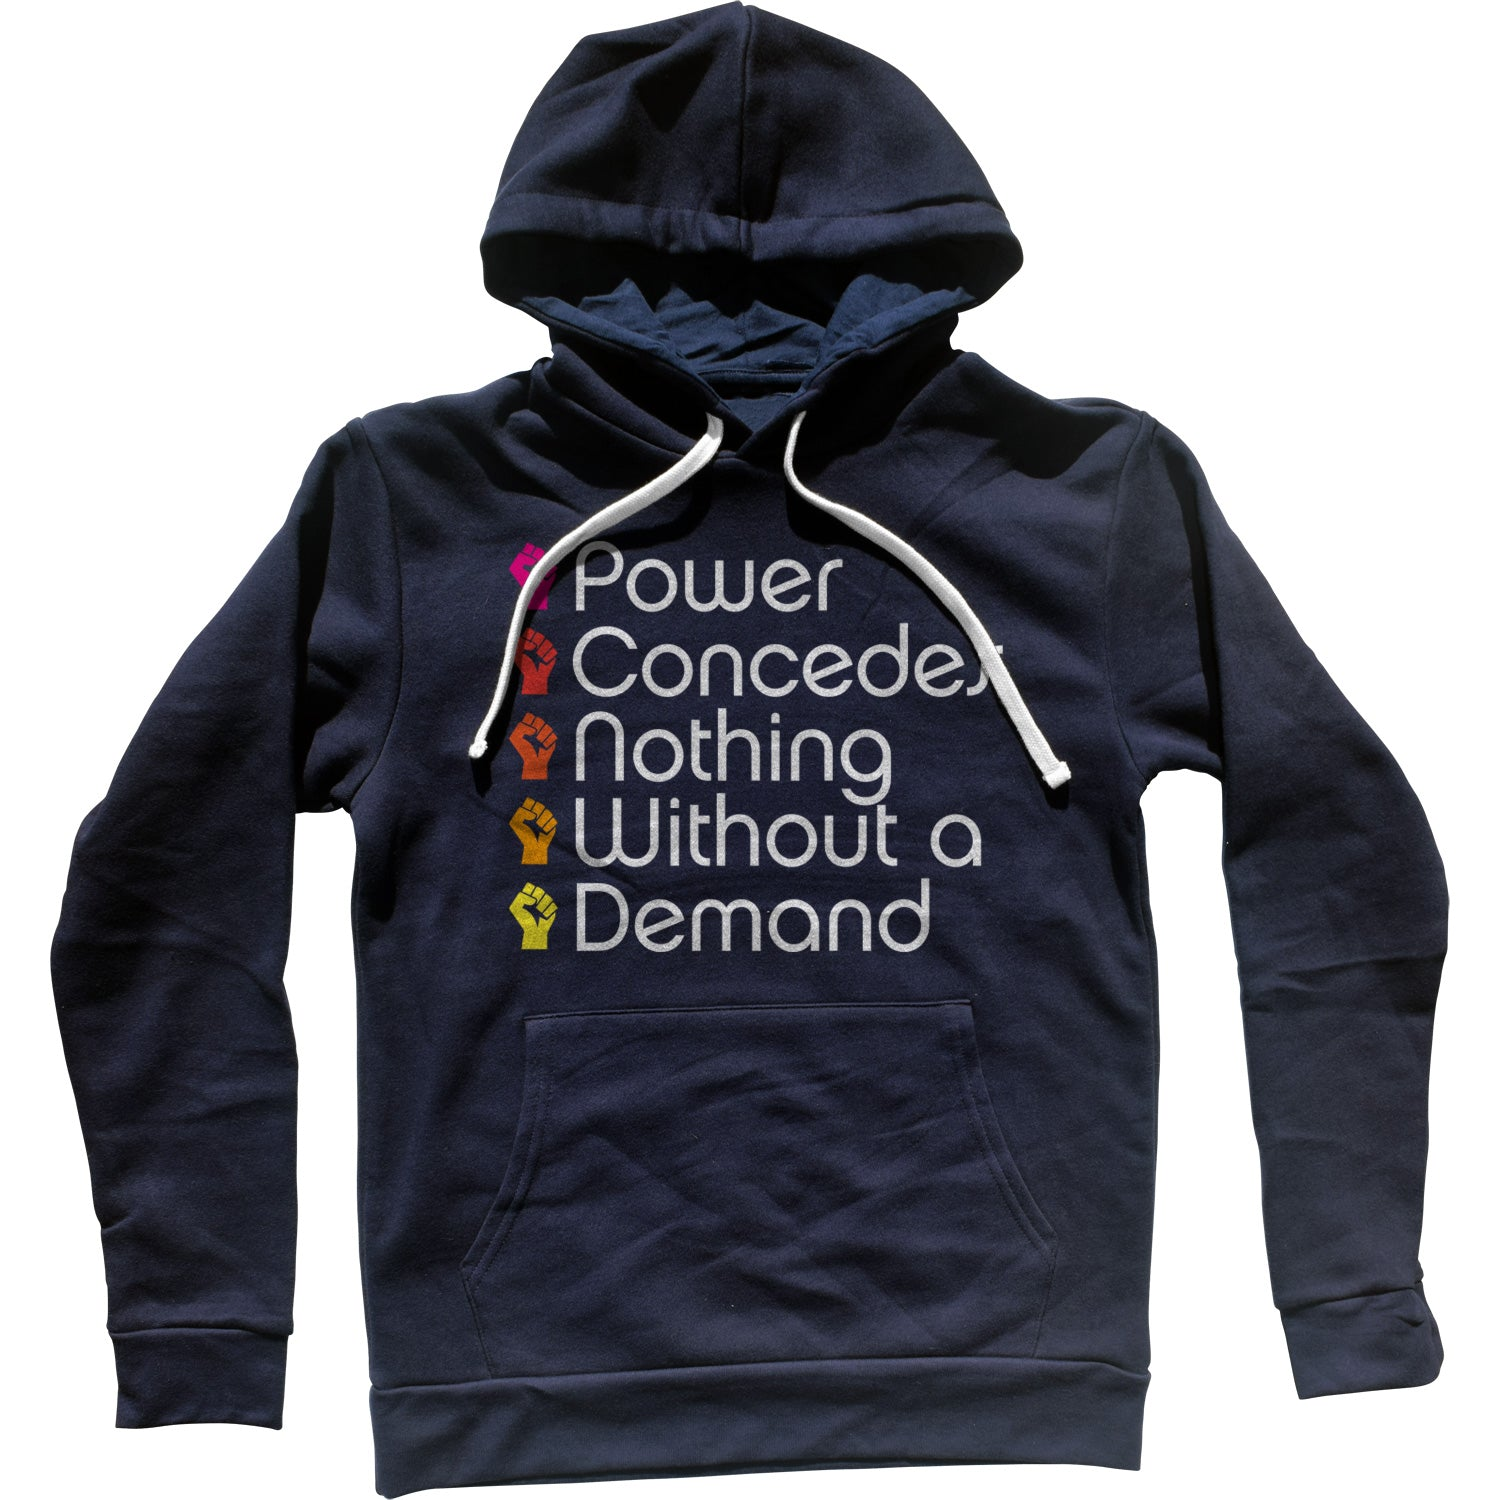 Power Concedes Nothing Without a Demand Unisex Hoodie